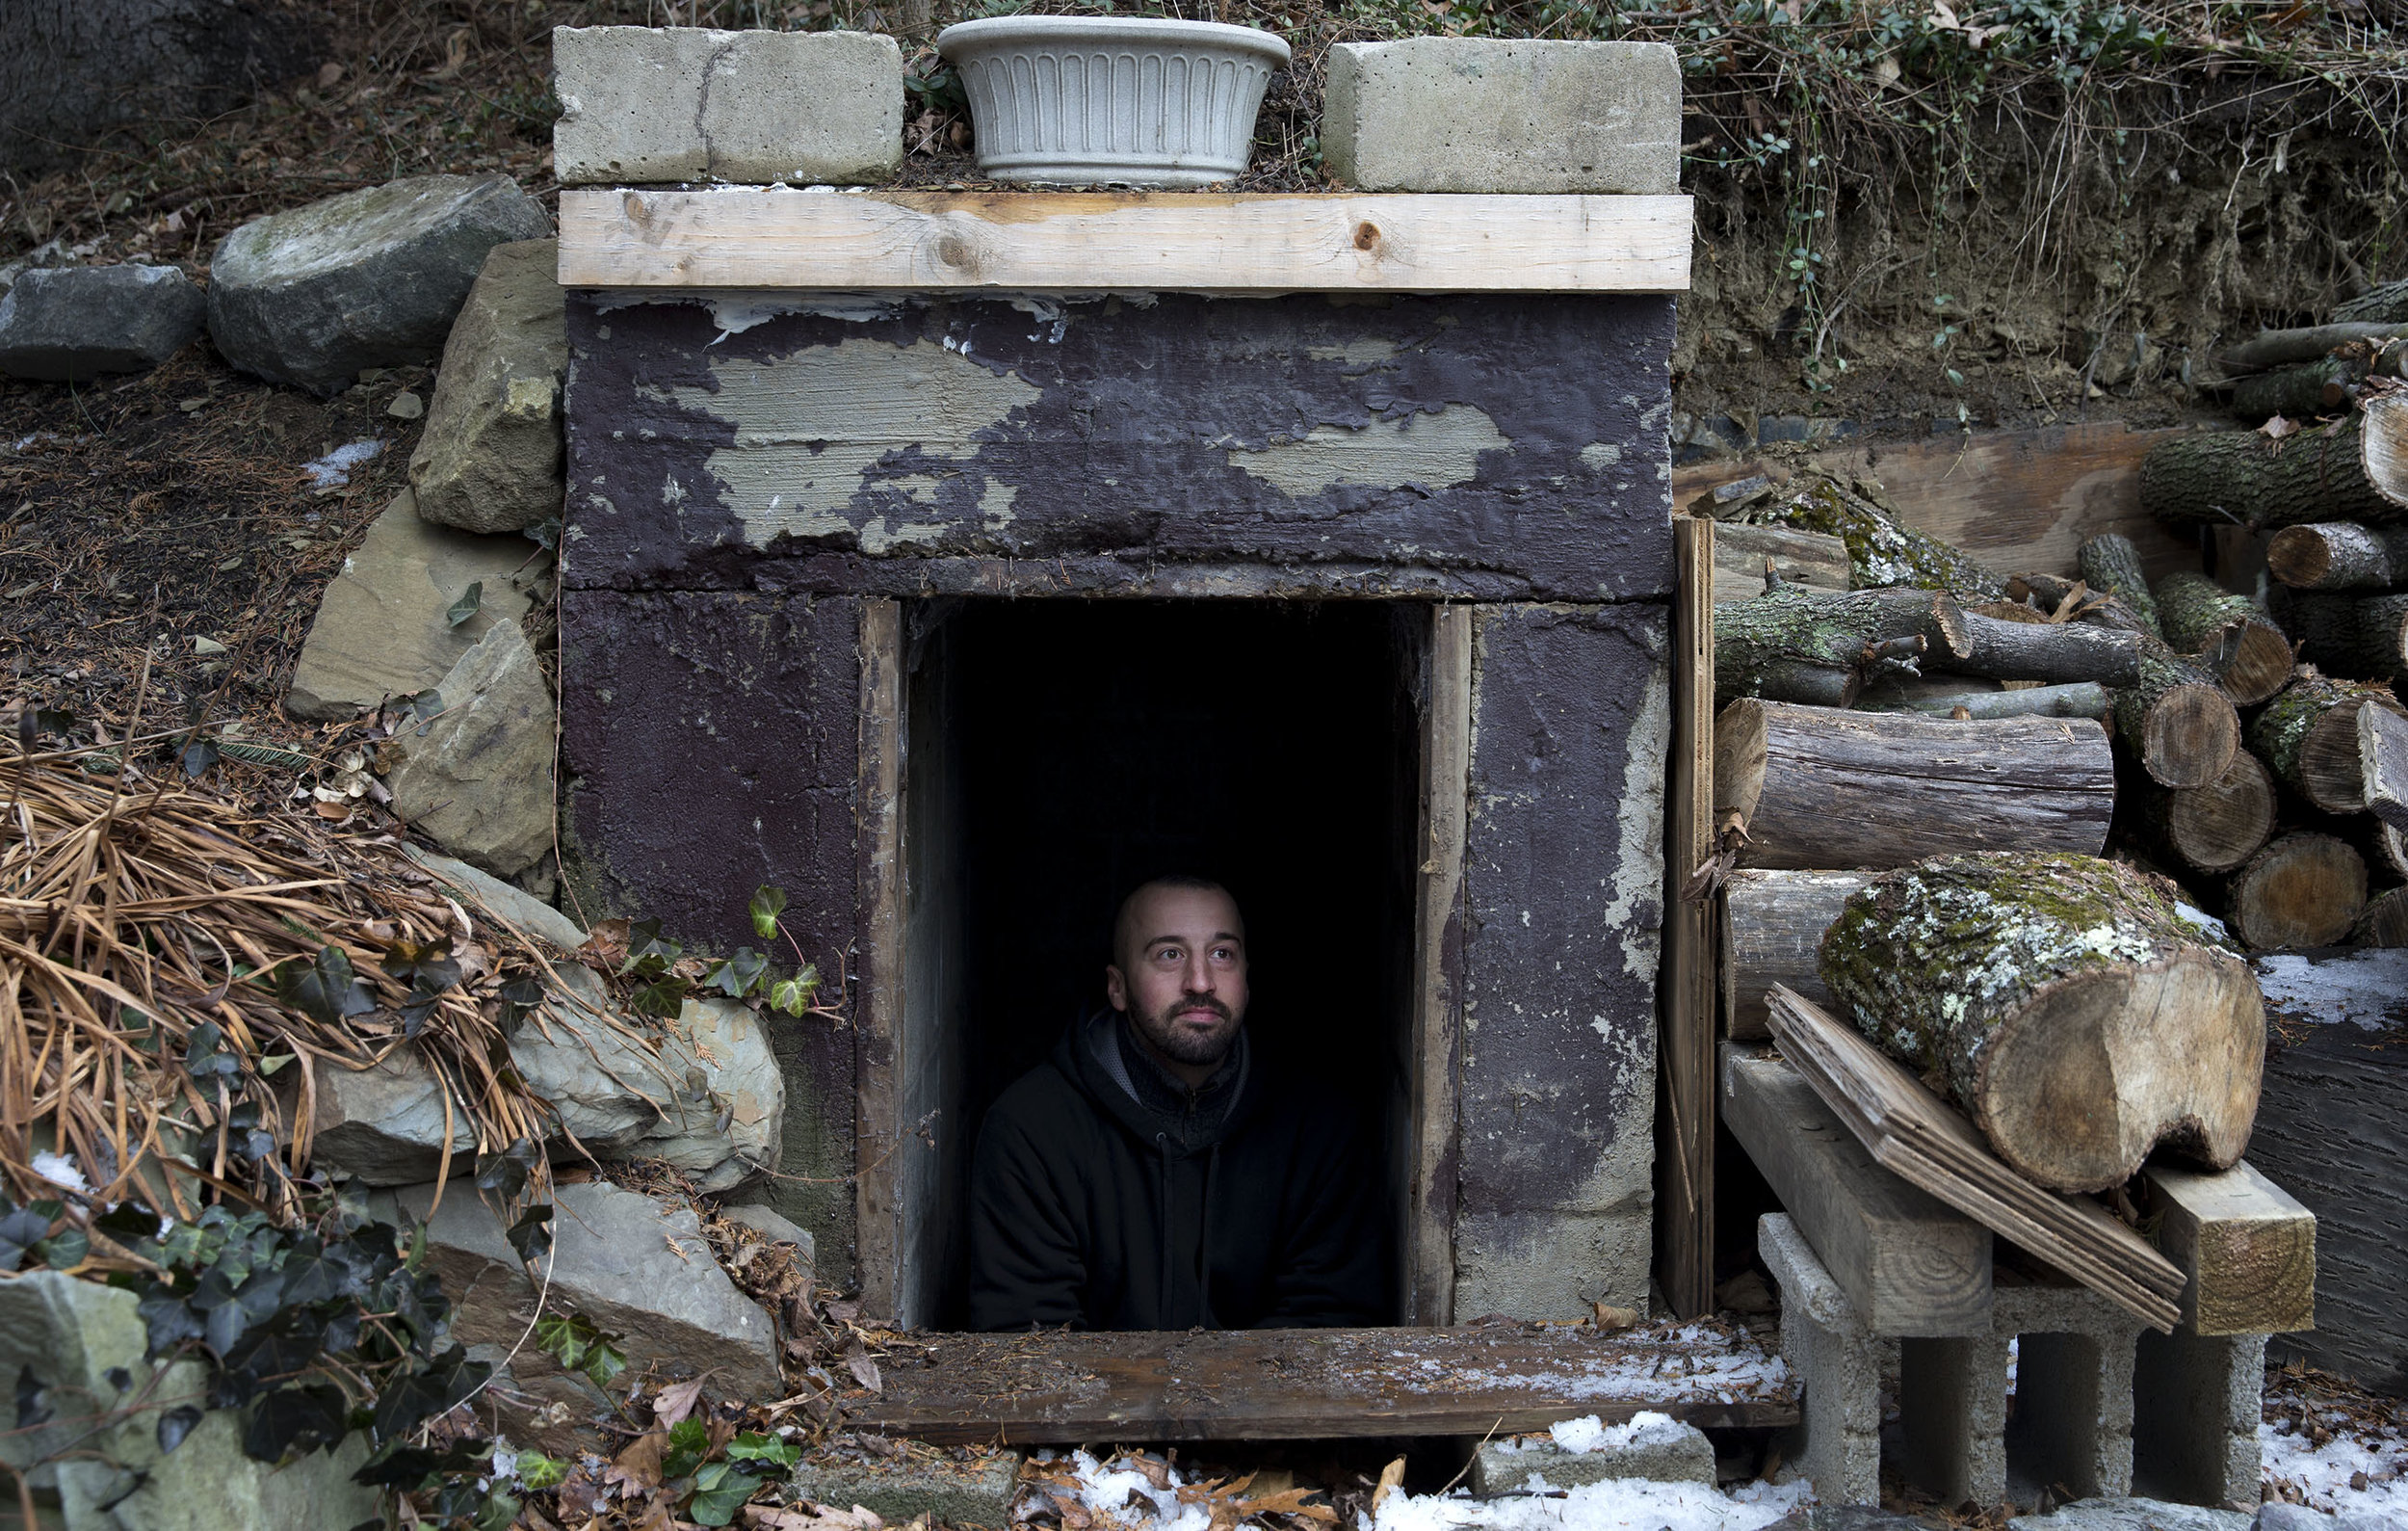 Seth Brokenbek talks with the Post-Gazette while sitting in the entrance of his bunker that was built for shelter into a hillside on his property on Wednesday, Jan. 10, 2018 in Murrysville.